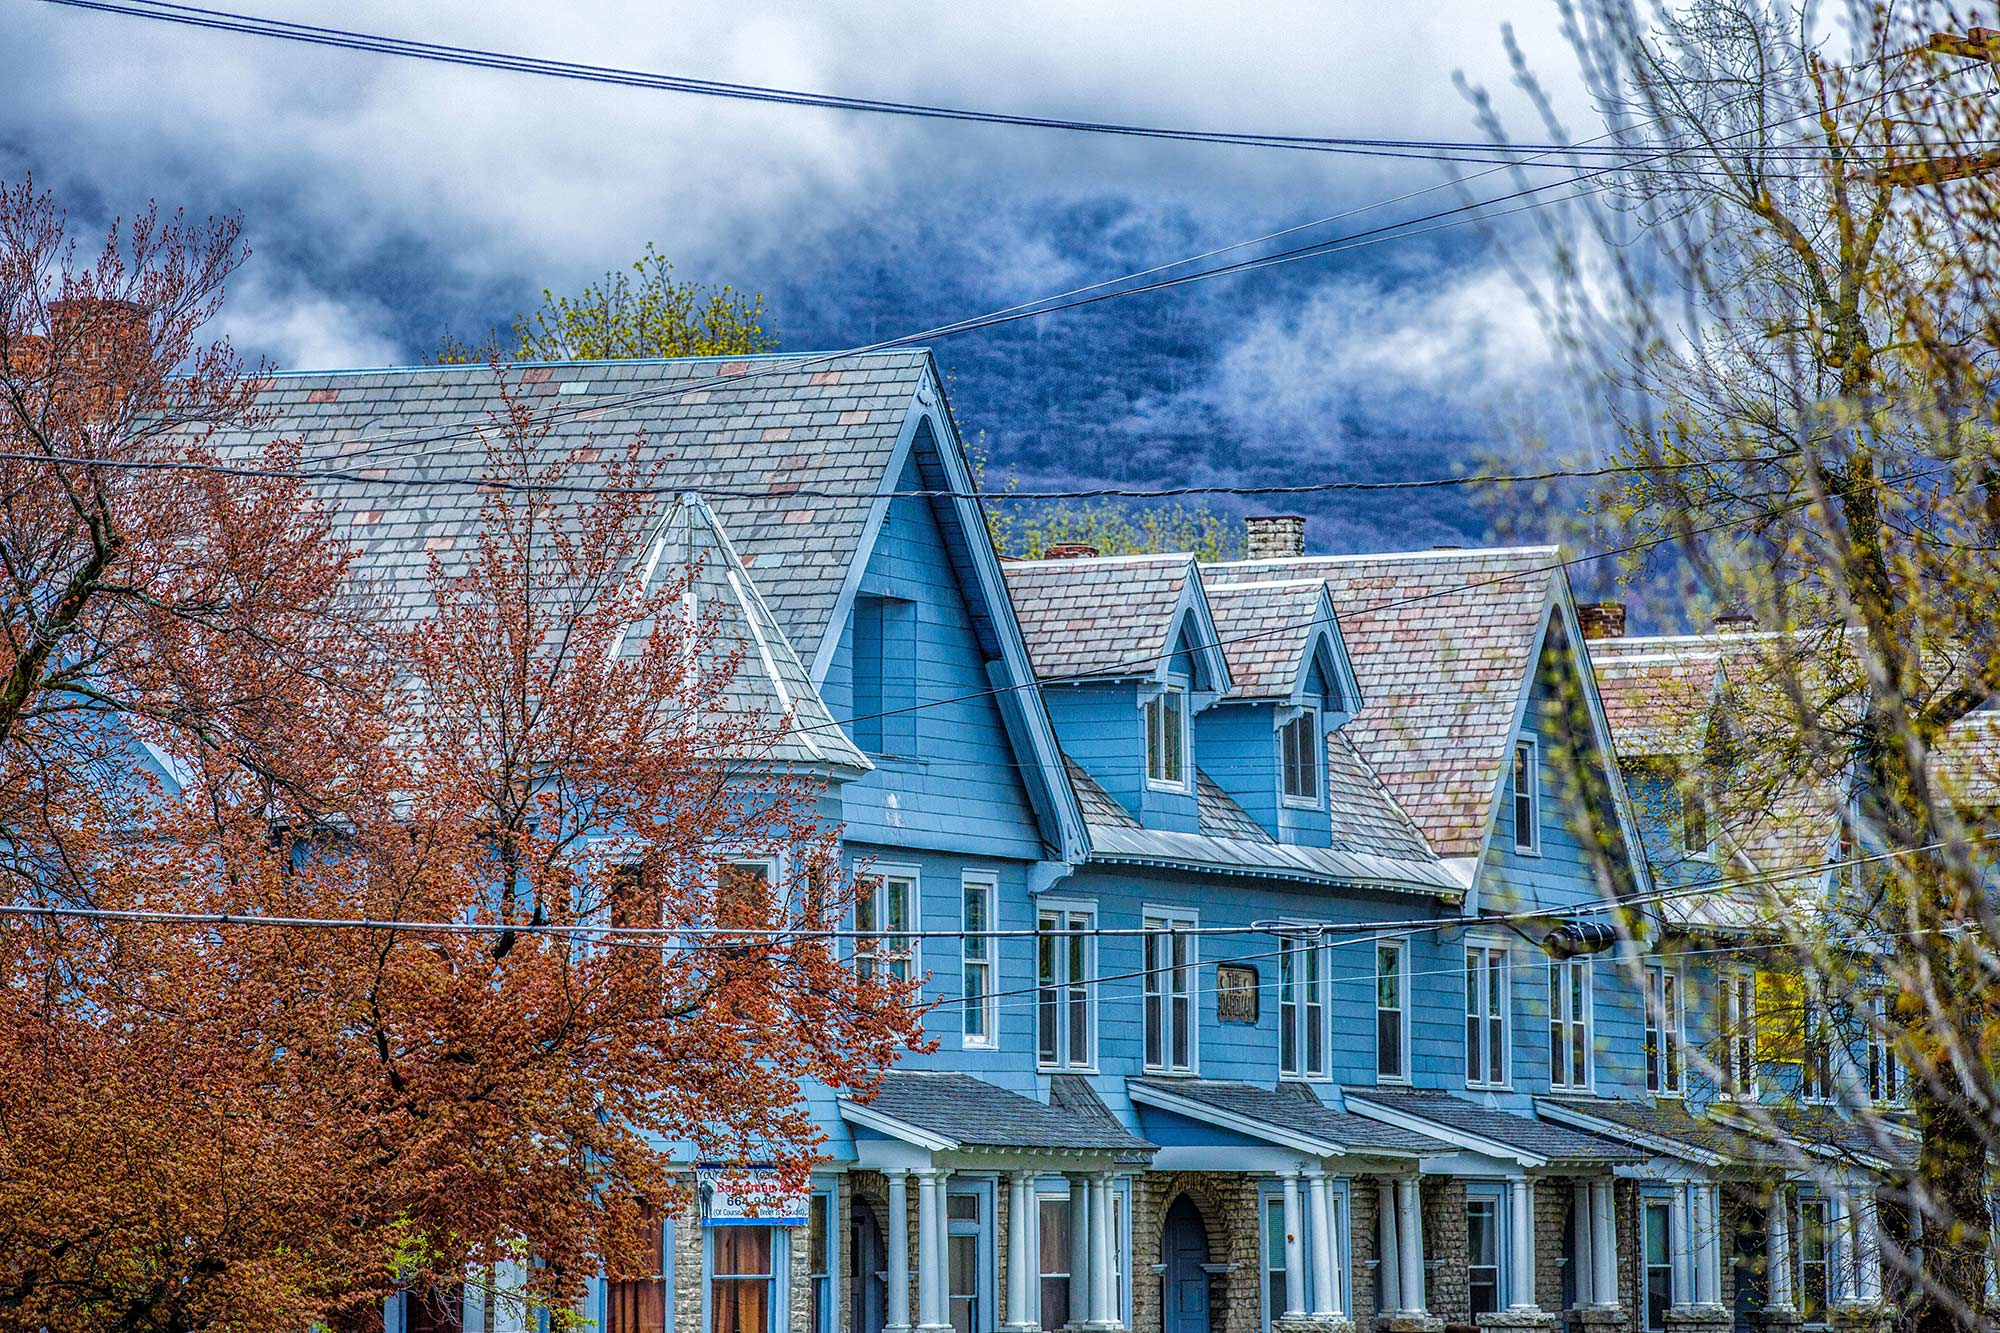 Boardman Row Houses, North Adams, MA - 5/3